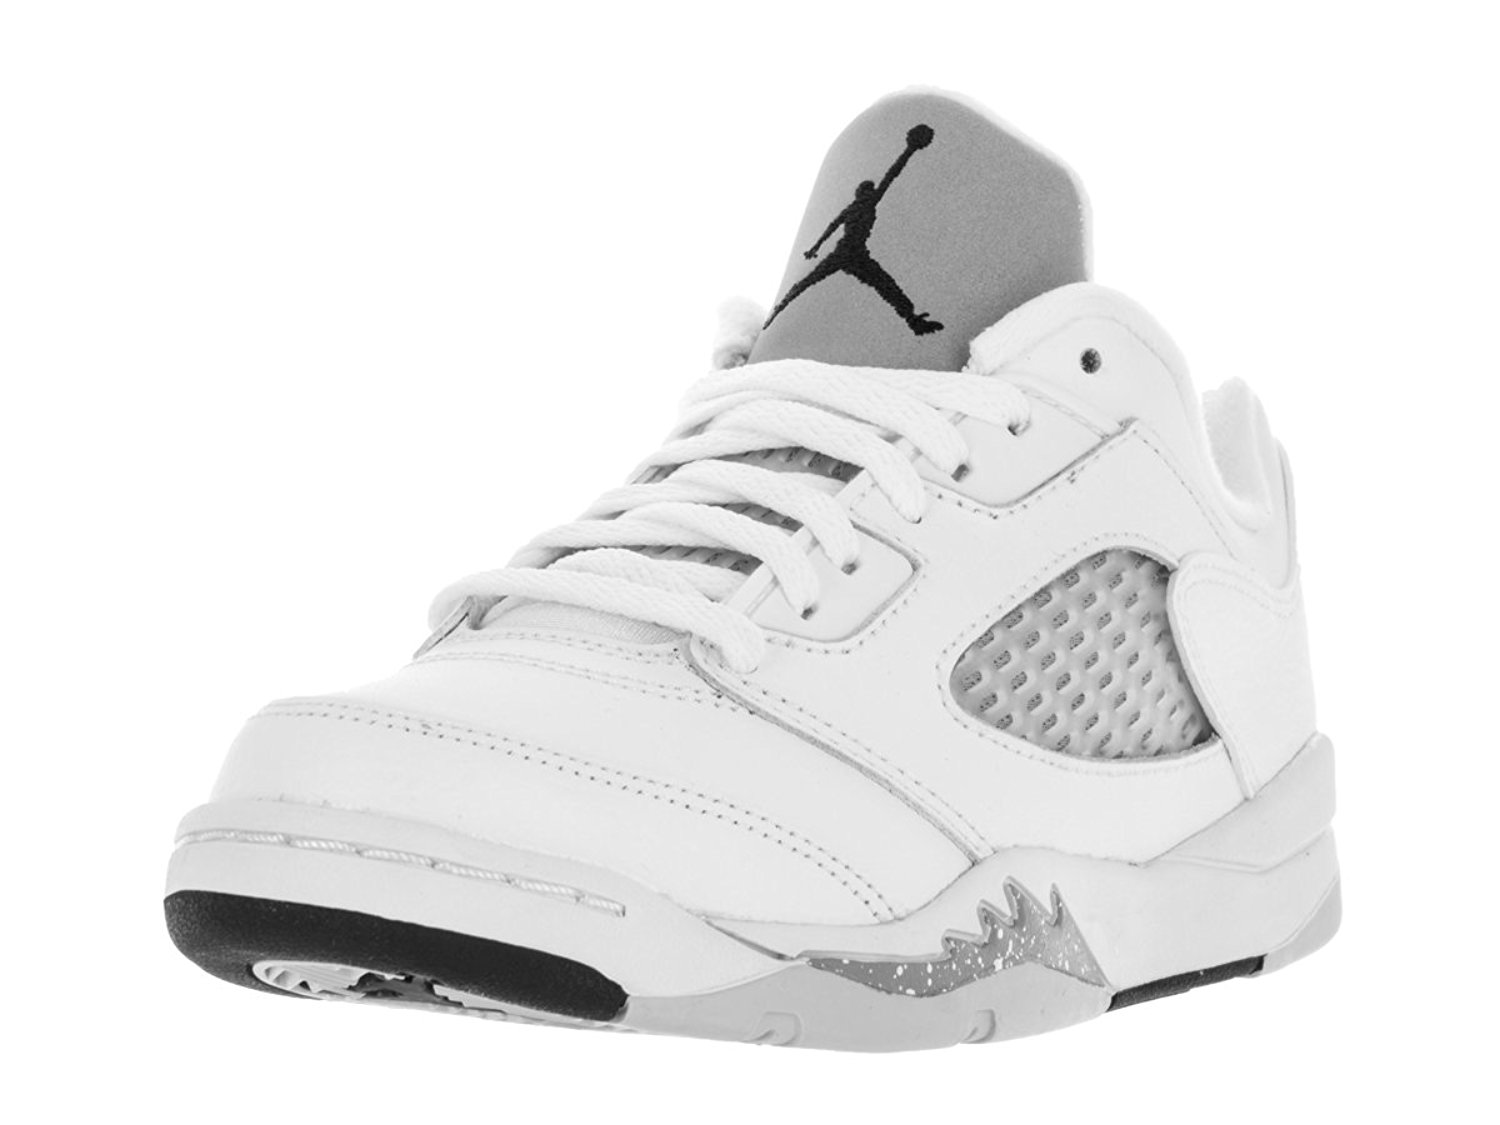 9669e00983083e Get Quotations · Nike Jordan Kids Jordan 5 Retro Low GP Basketball Shoe